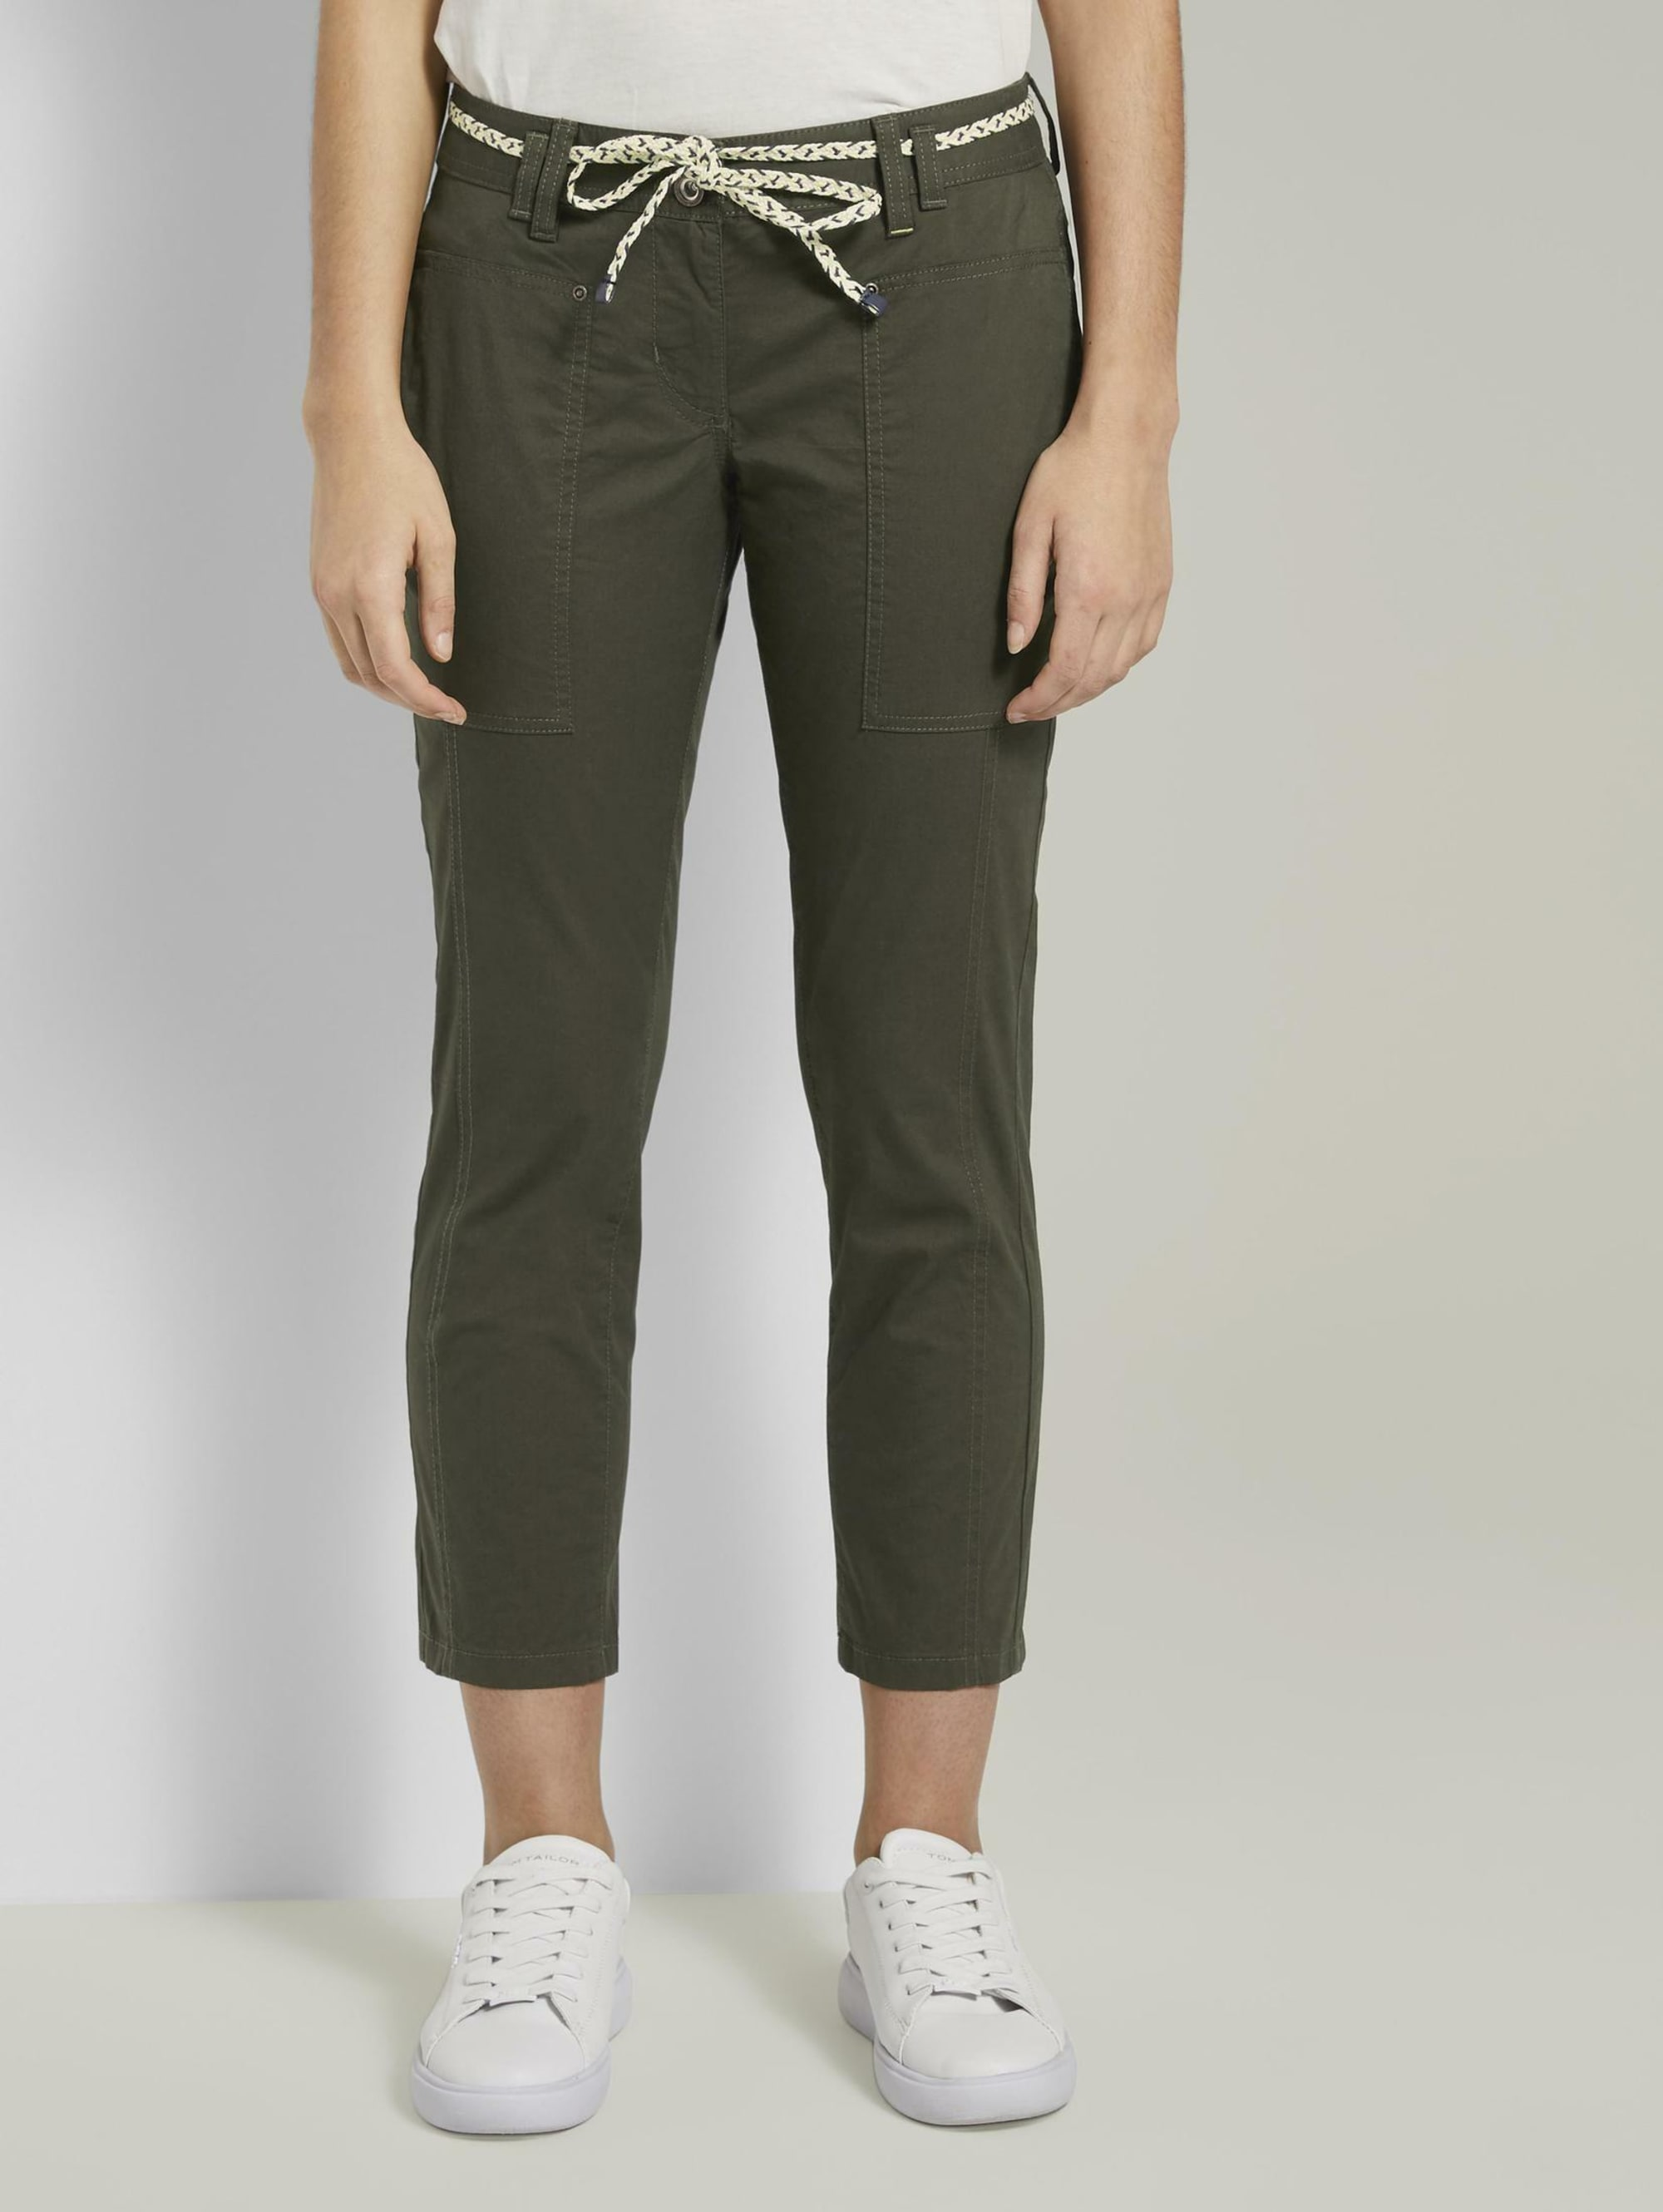 Tom Tailor Tapered Relaxed Hose mit Bandgürtel Wi9Zv ng2oY